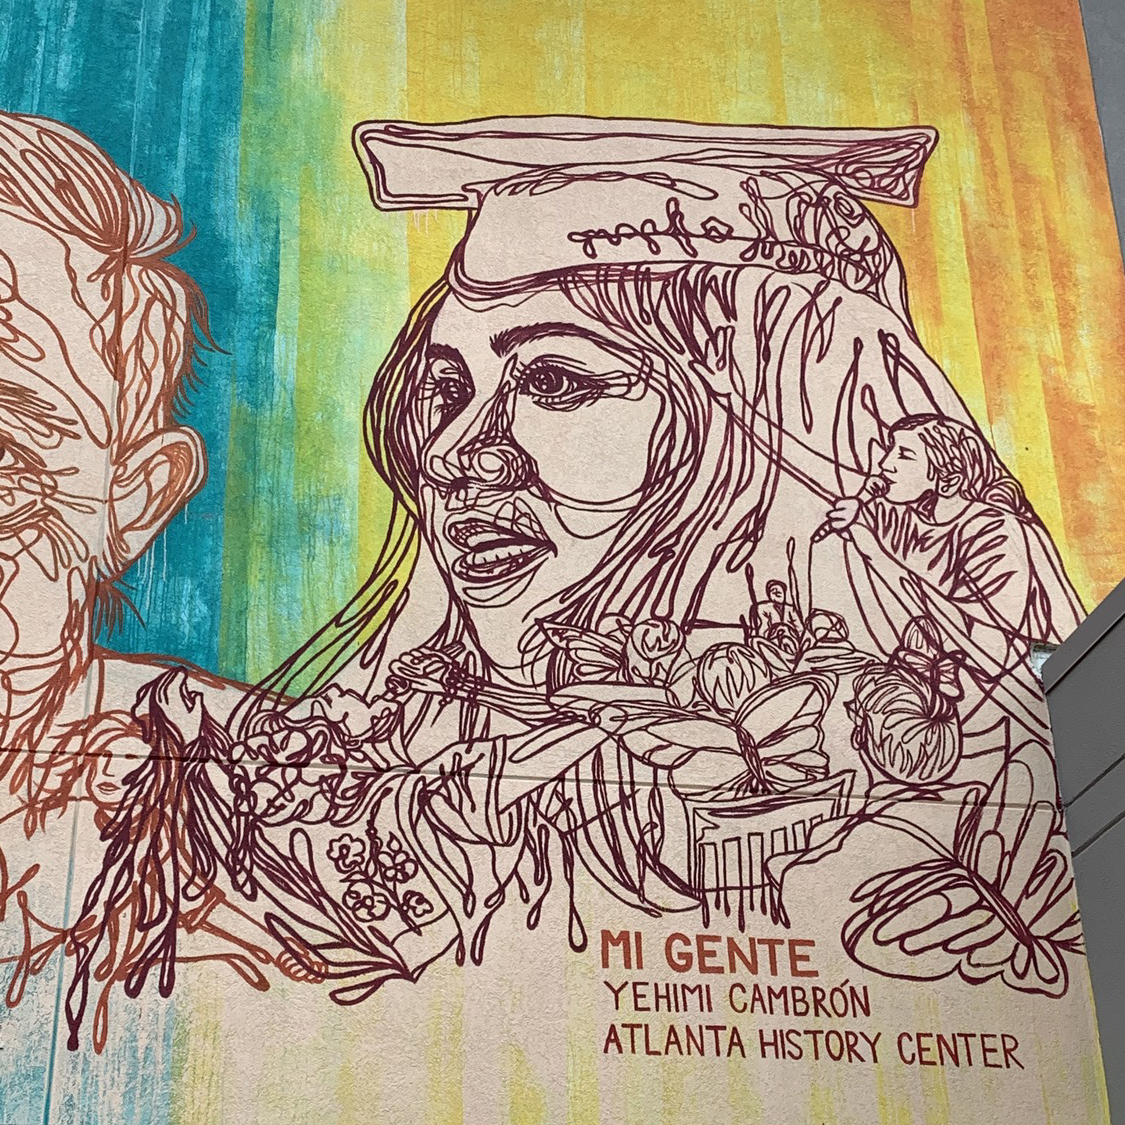 Closeup of Dreamers portrait of Arizbeth Sanchez from Mi Gente mural by Yehimi Cambrón